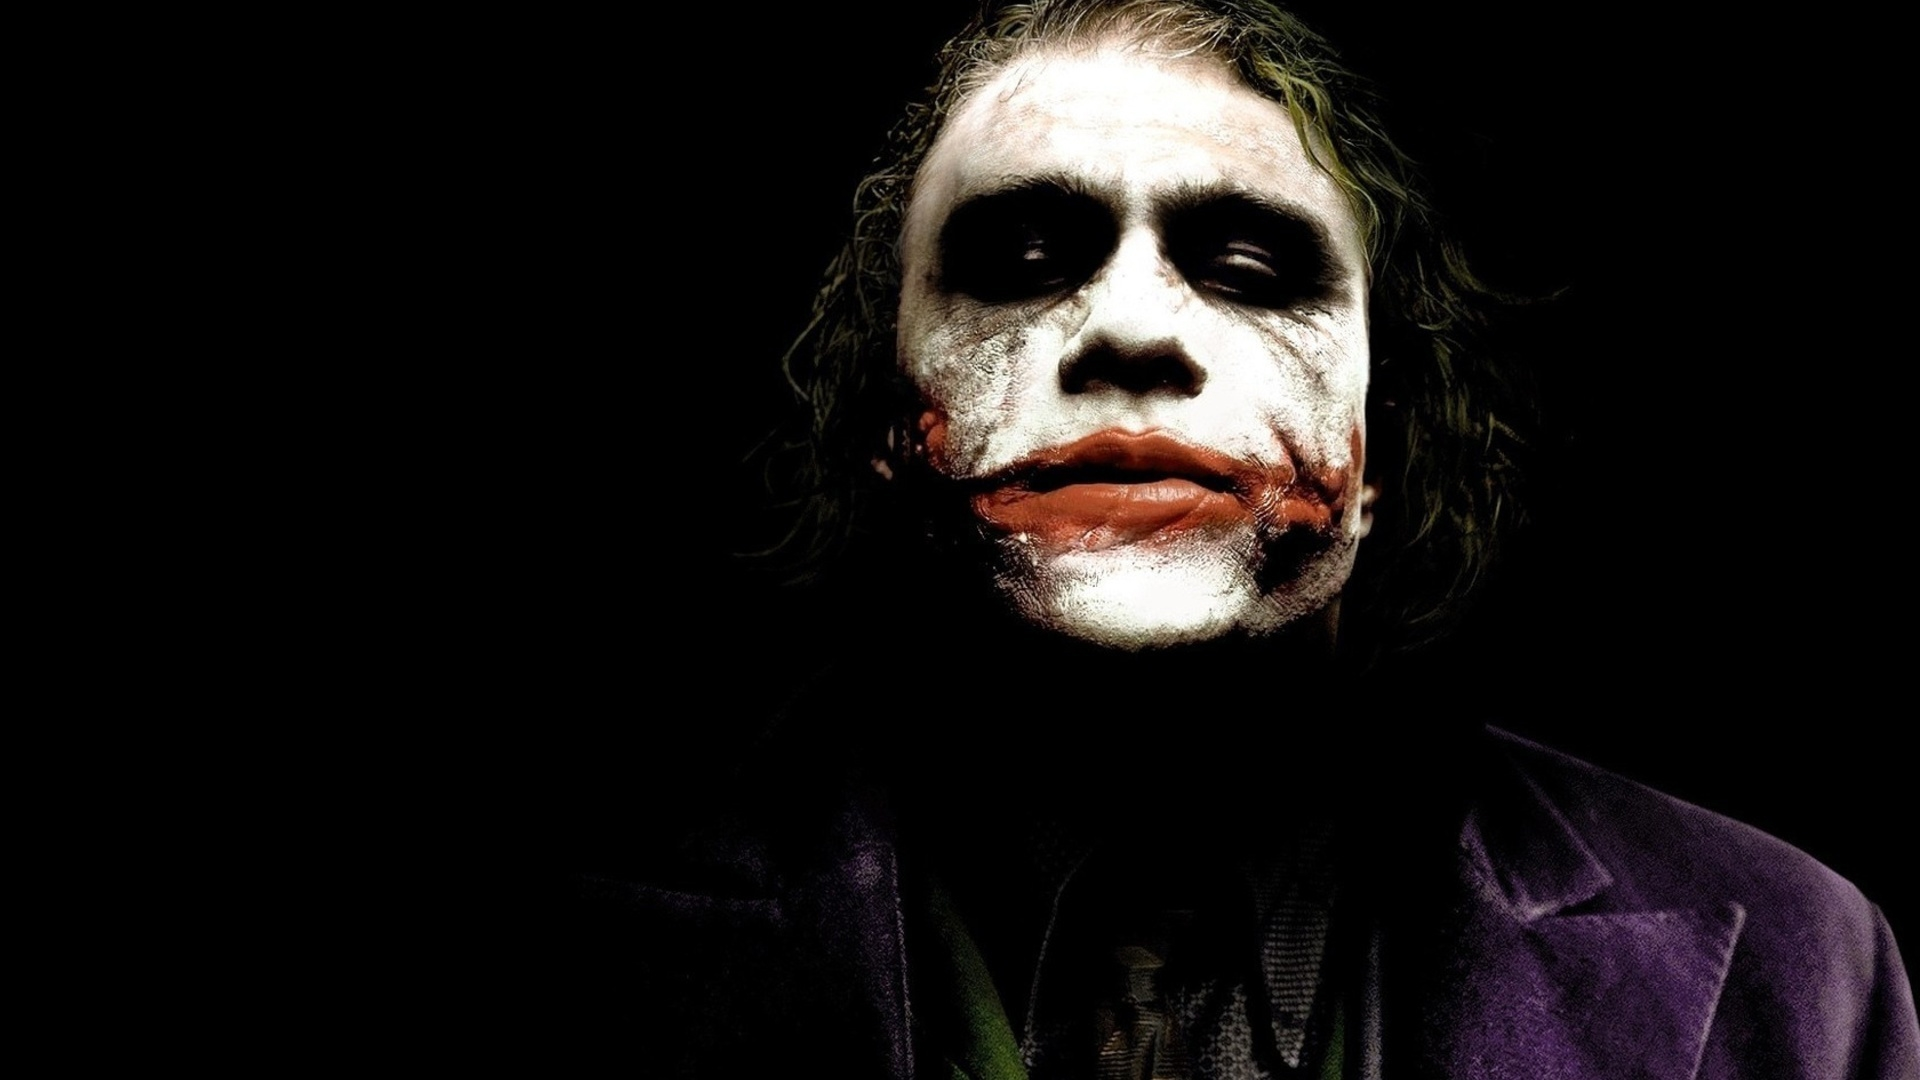 Heath Ledger Joker Wallpaper HD - WallpaperSafari